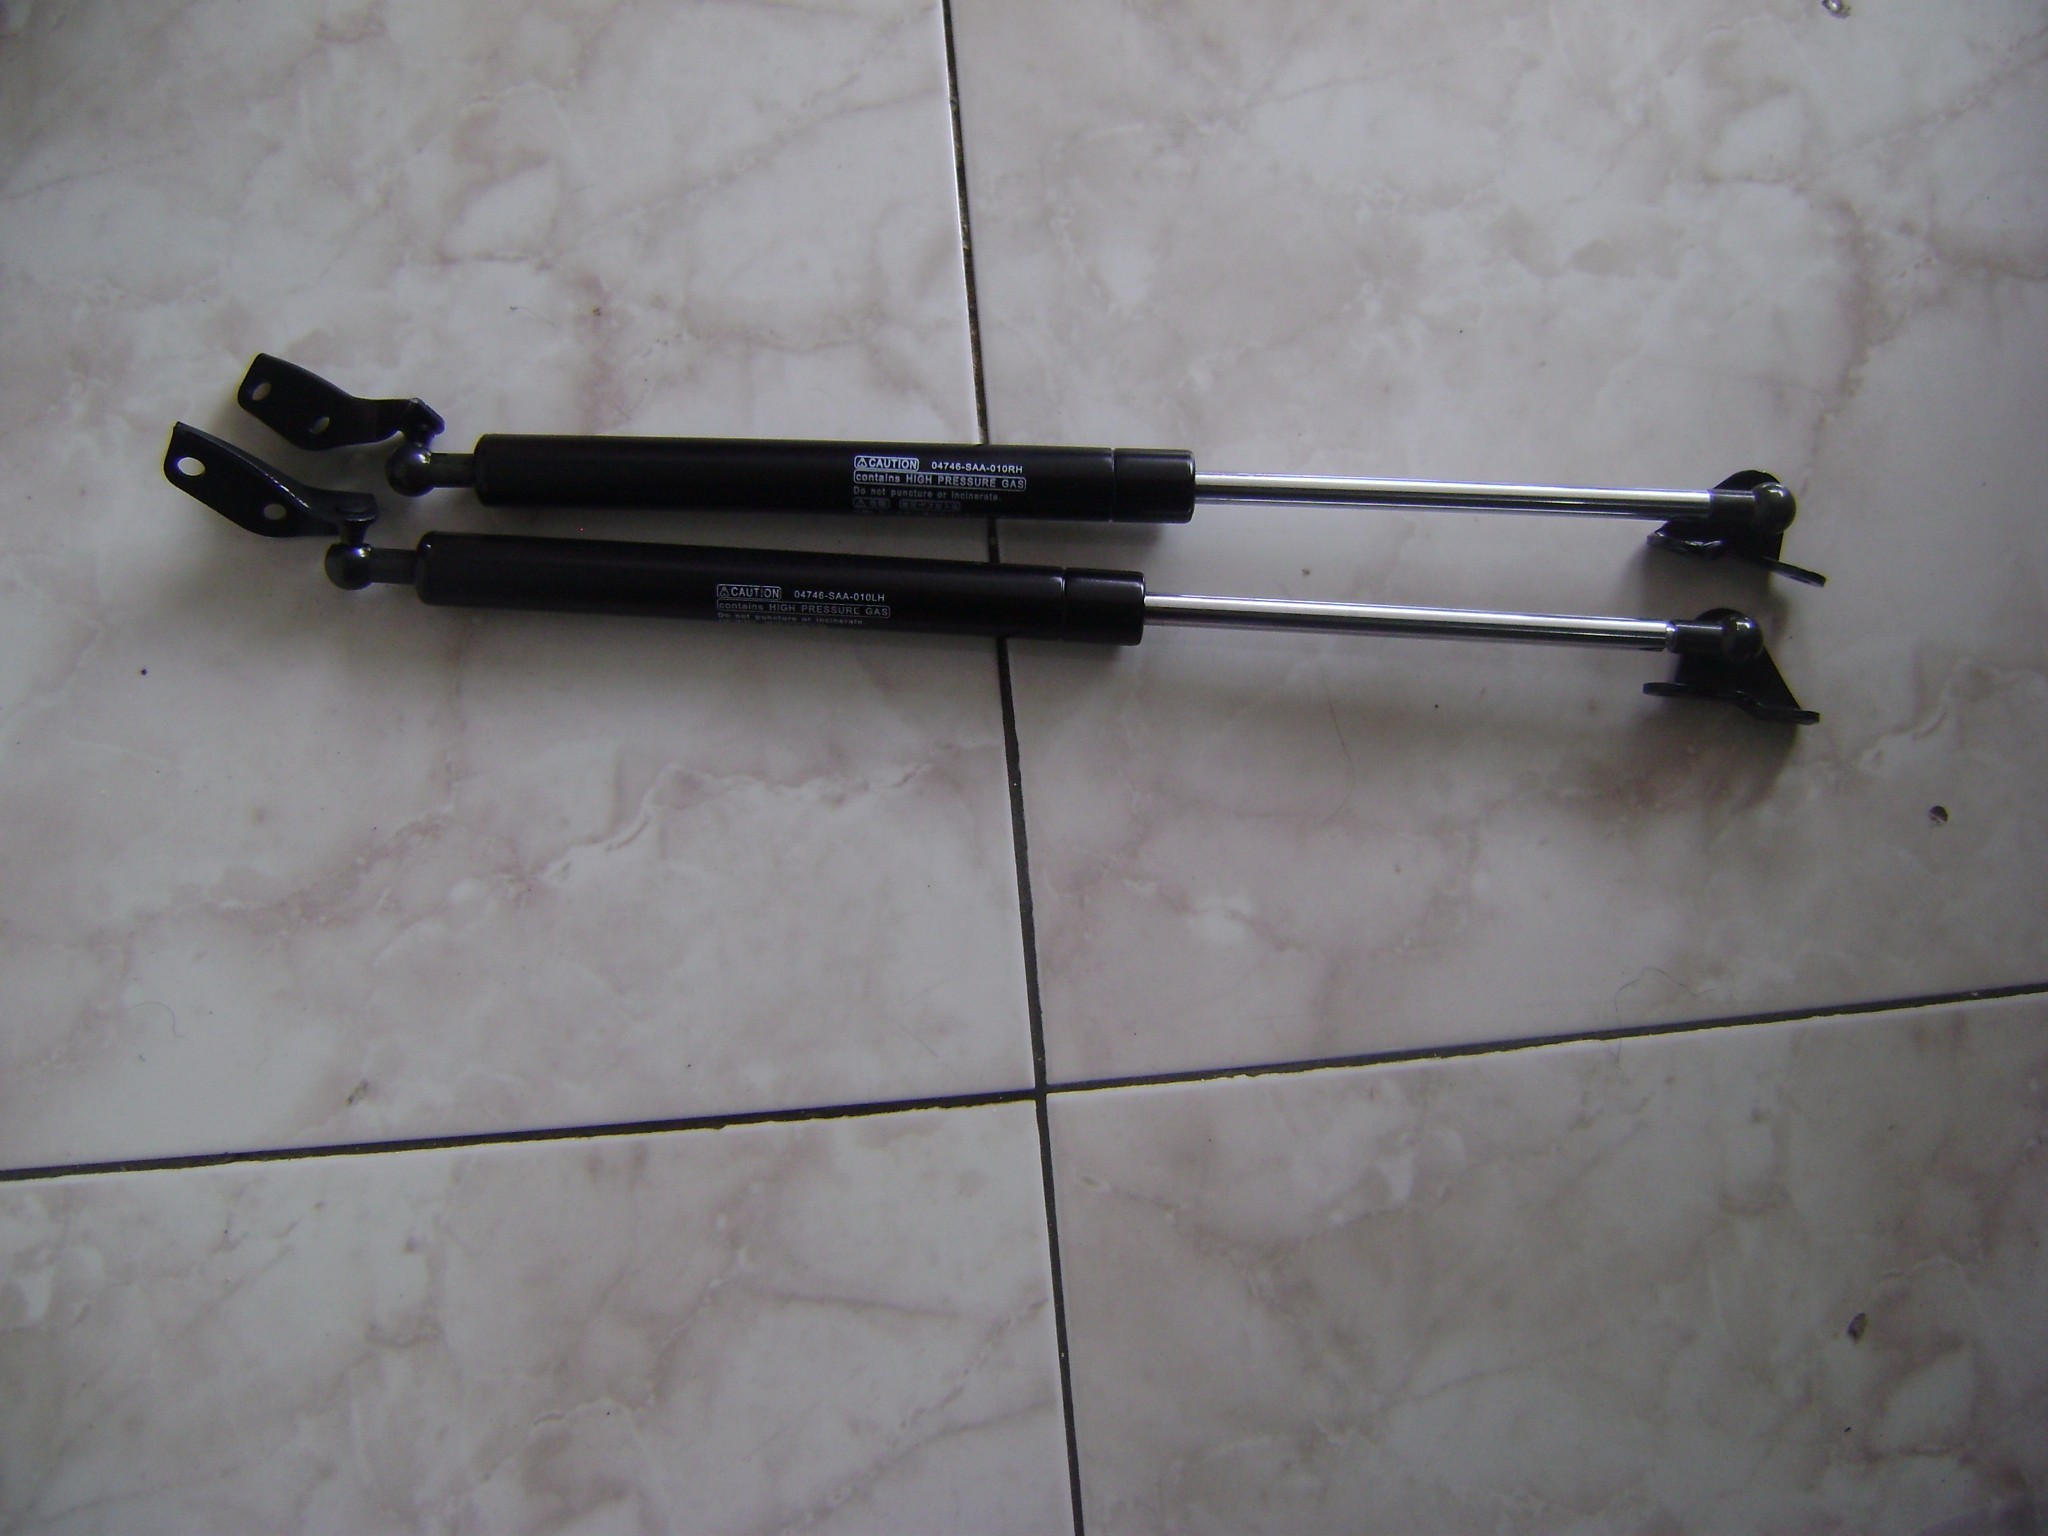 SHOCK BAGASI HONDA JAZZ (1Set)